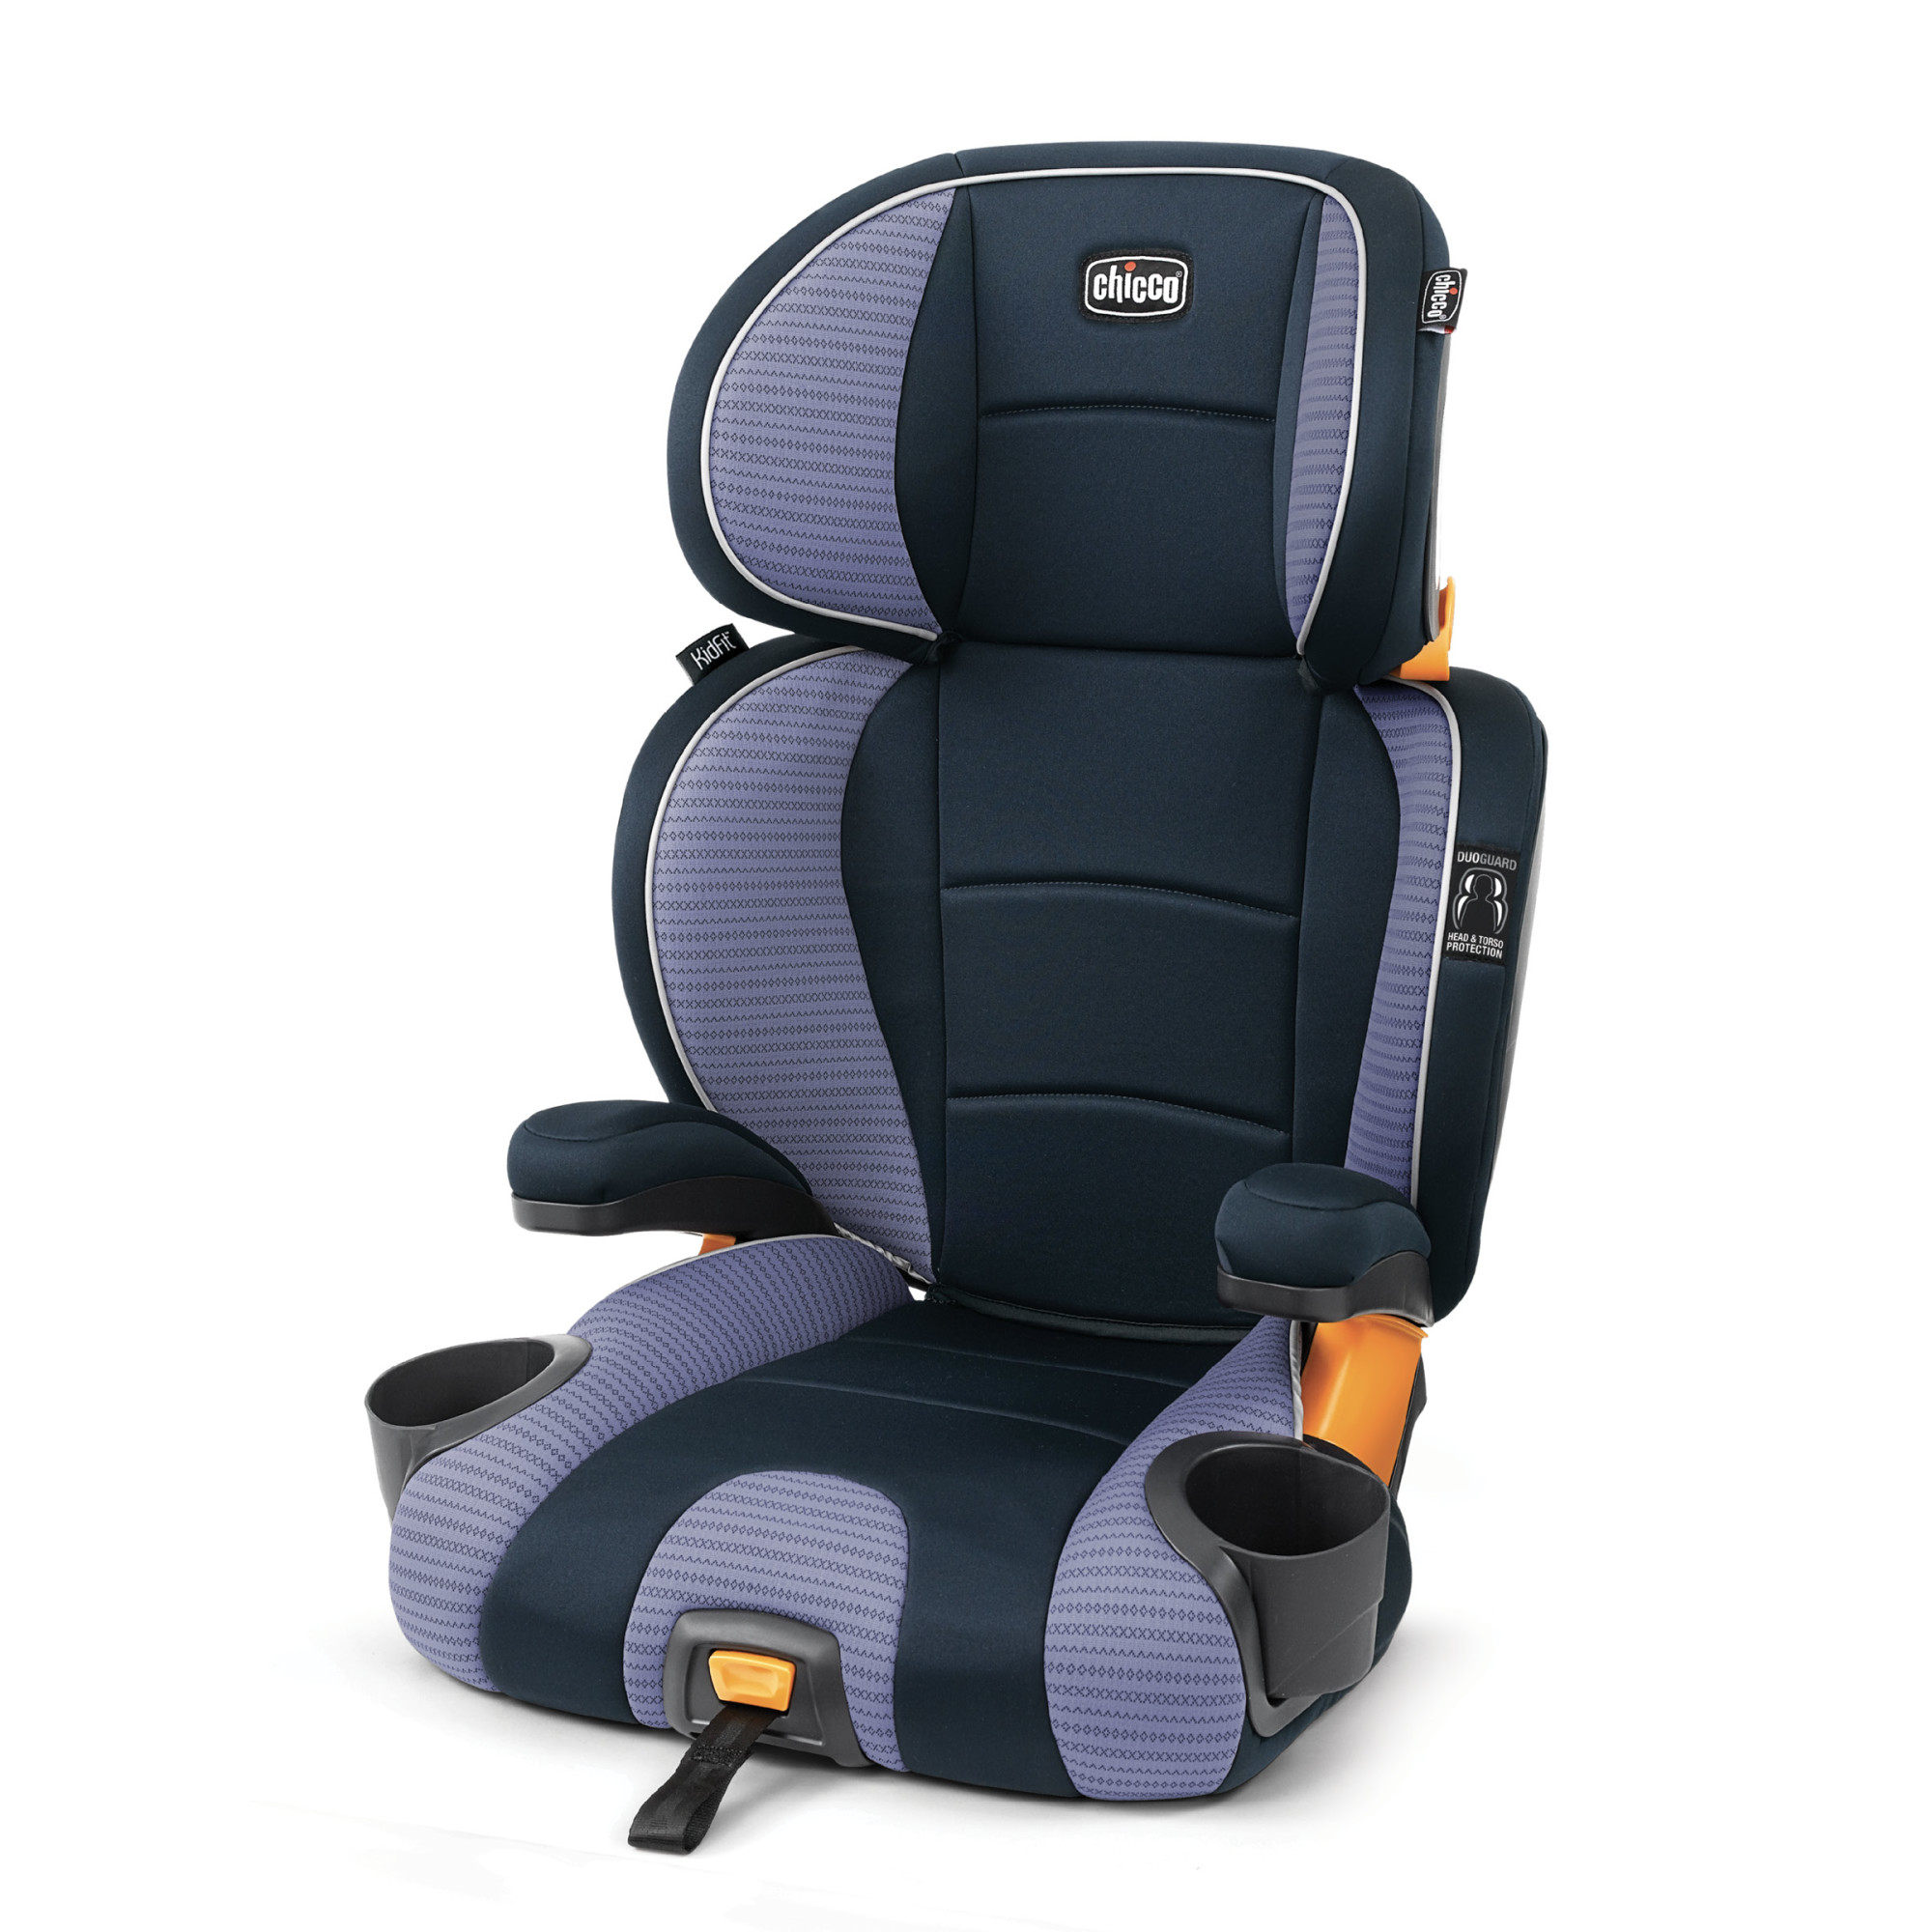 KidFit 2-in-1 Belt Positioning Booster Car Seat - Celeste | Chicco